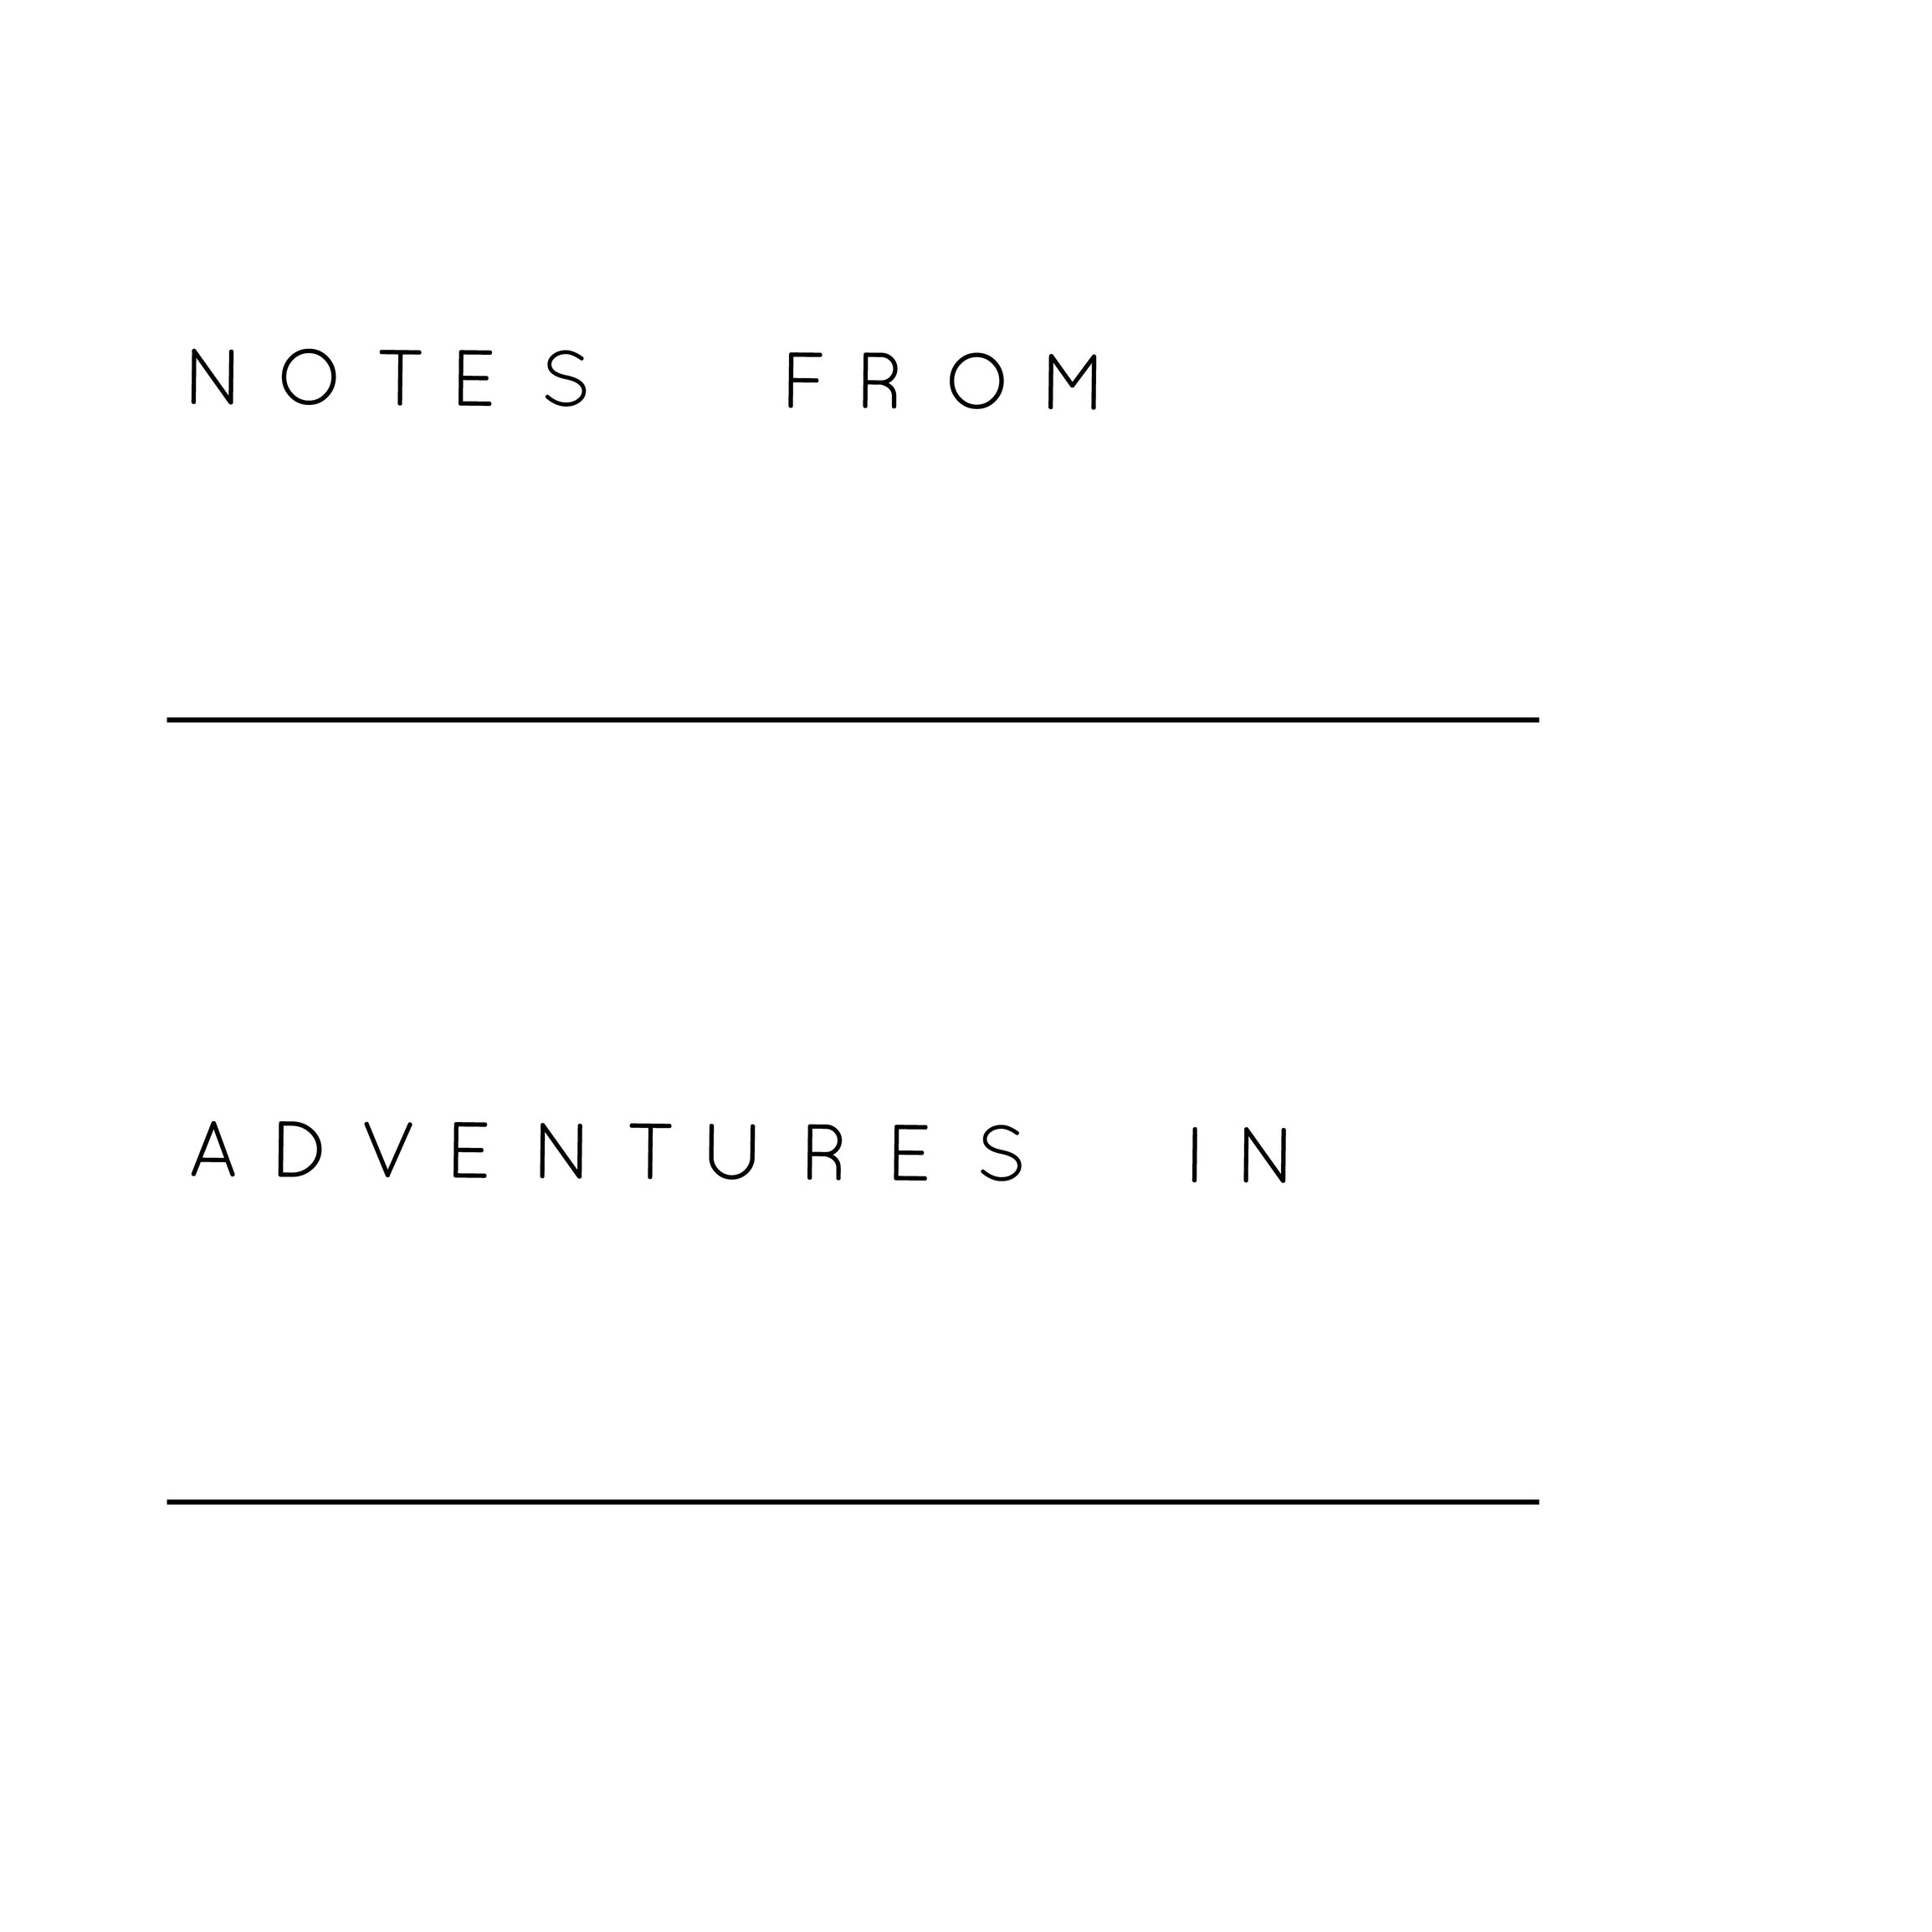 Notes-From-adventures-in.jpg